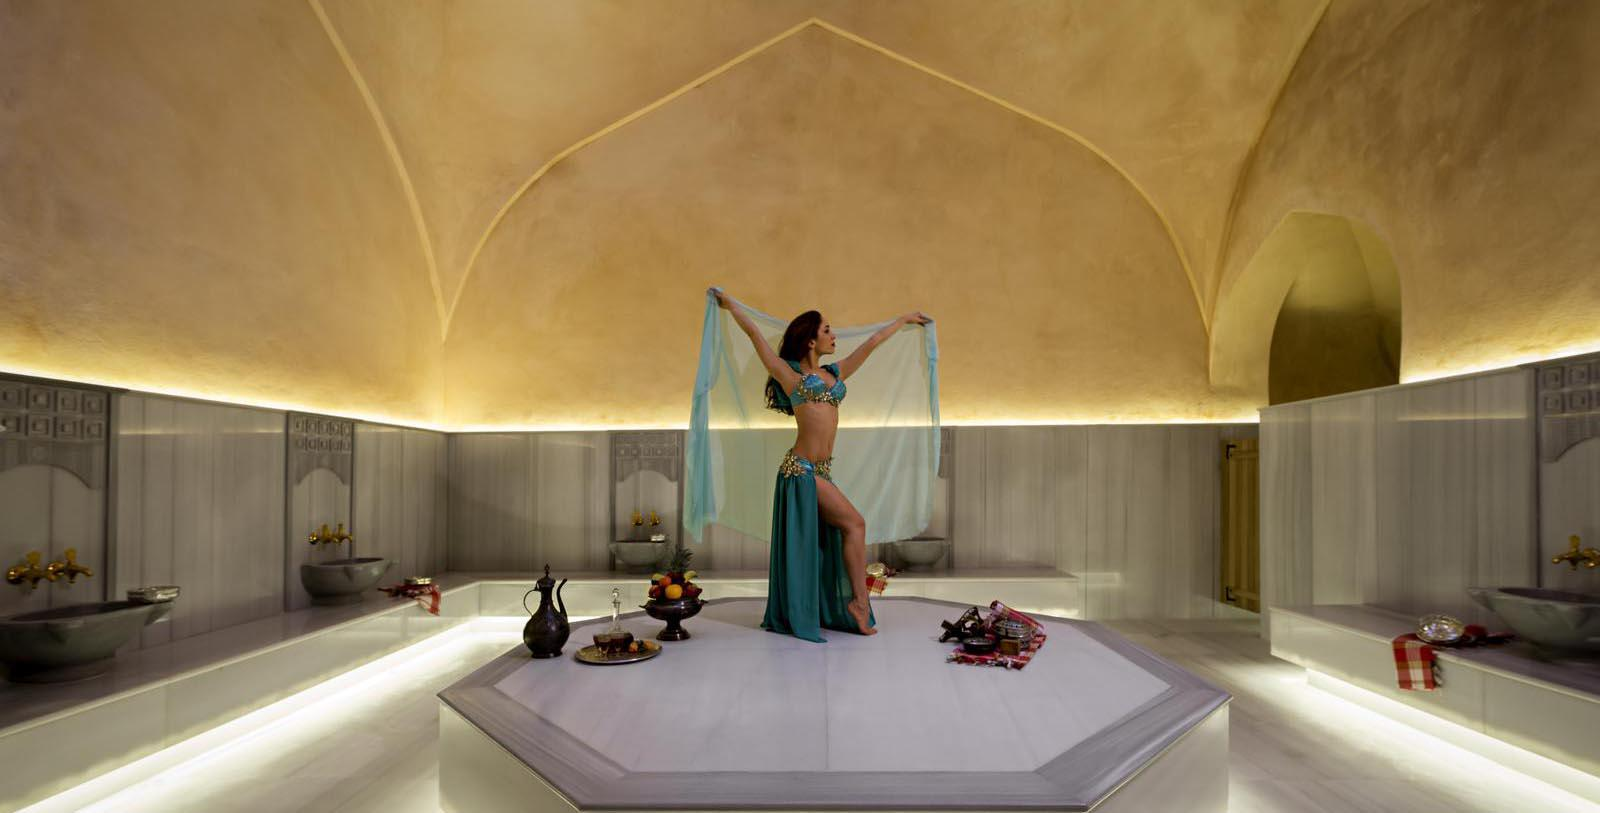 Image of Historic Turkish Bath and Spa at The Galata Istanbul Hotel - MGallery by Sofitel, 1720, Member of Historic Hotels Worldwide, in Istanbul, Turkey, Explore